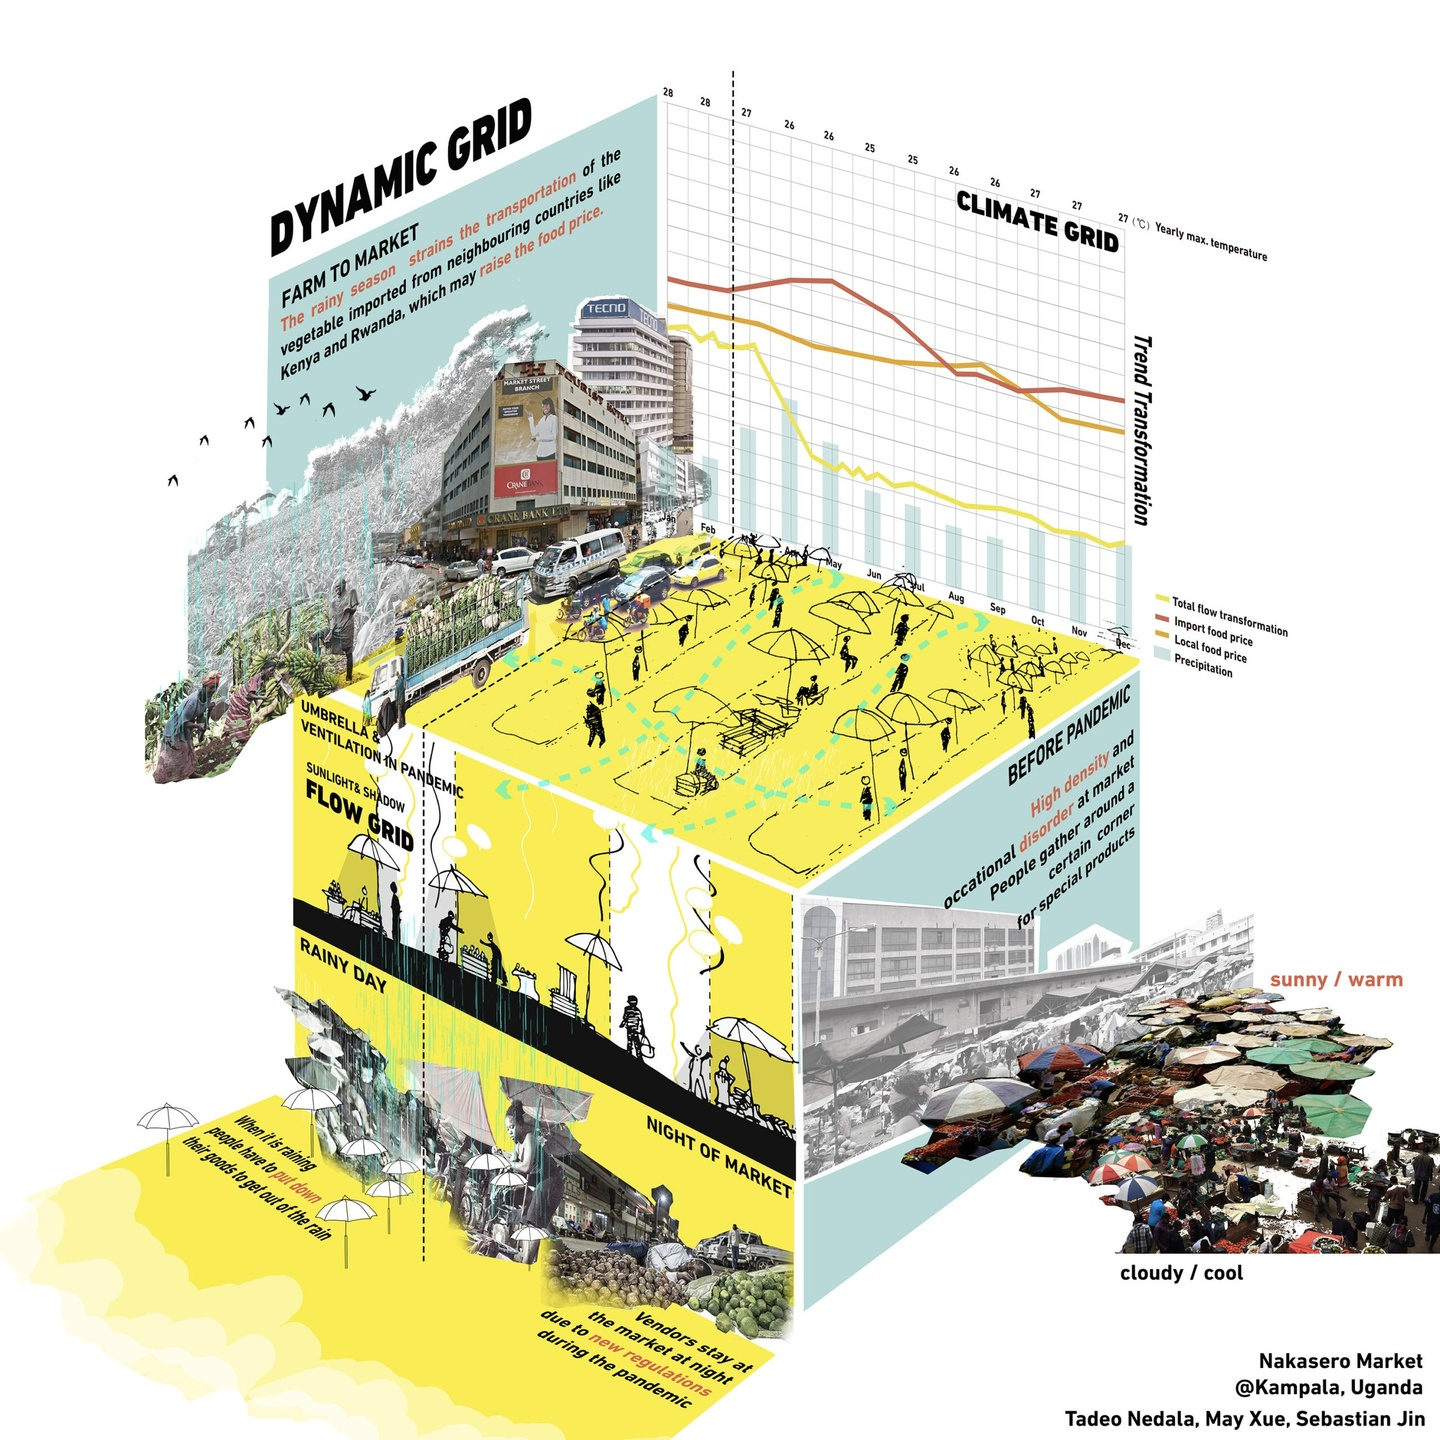 """3D grid plan analyzing the Nakasero market. Includes a """"Farm to Market"""" text blurb with images of the city, climate grid line graph + bar chart, a panel illustrating a flow grid for the market, and a panel illustrating densely packed conditions before the pandemic."""